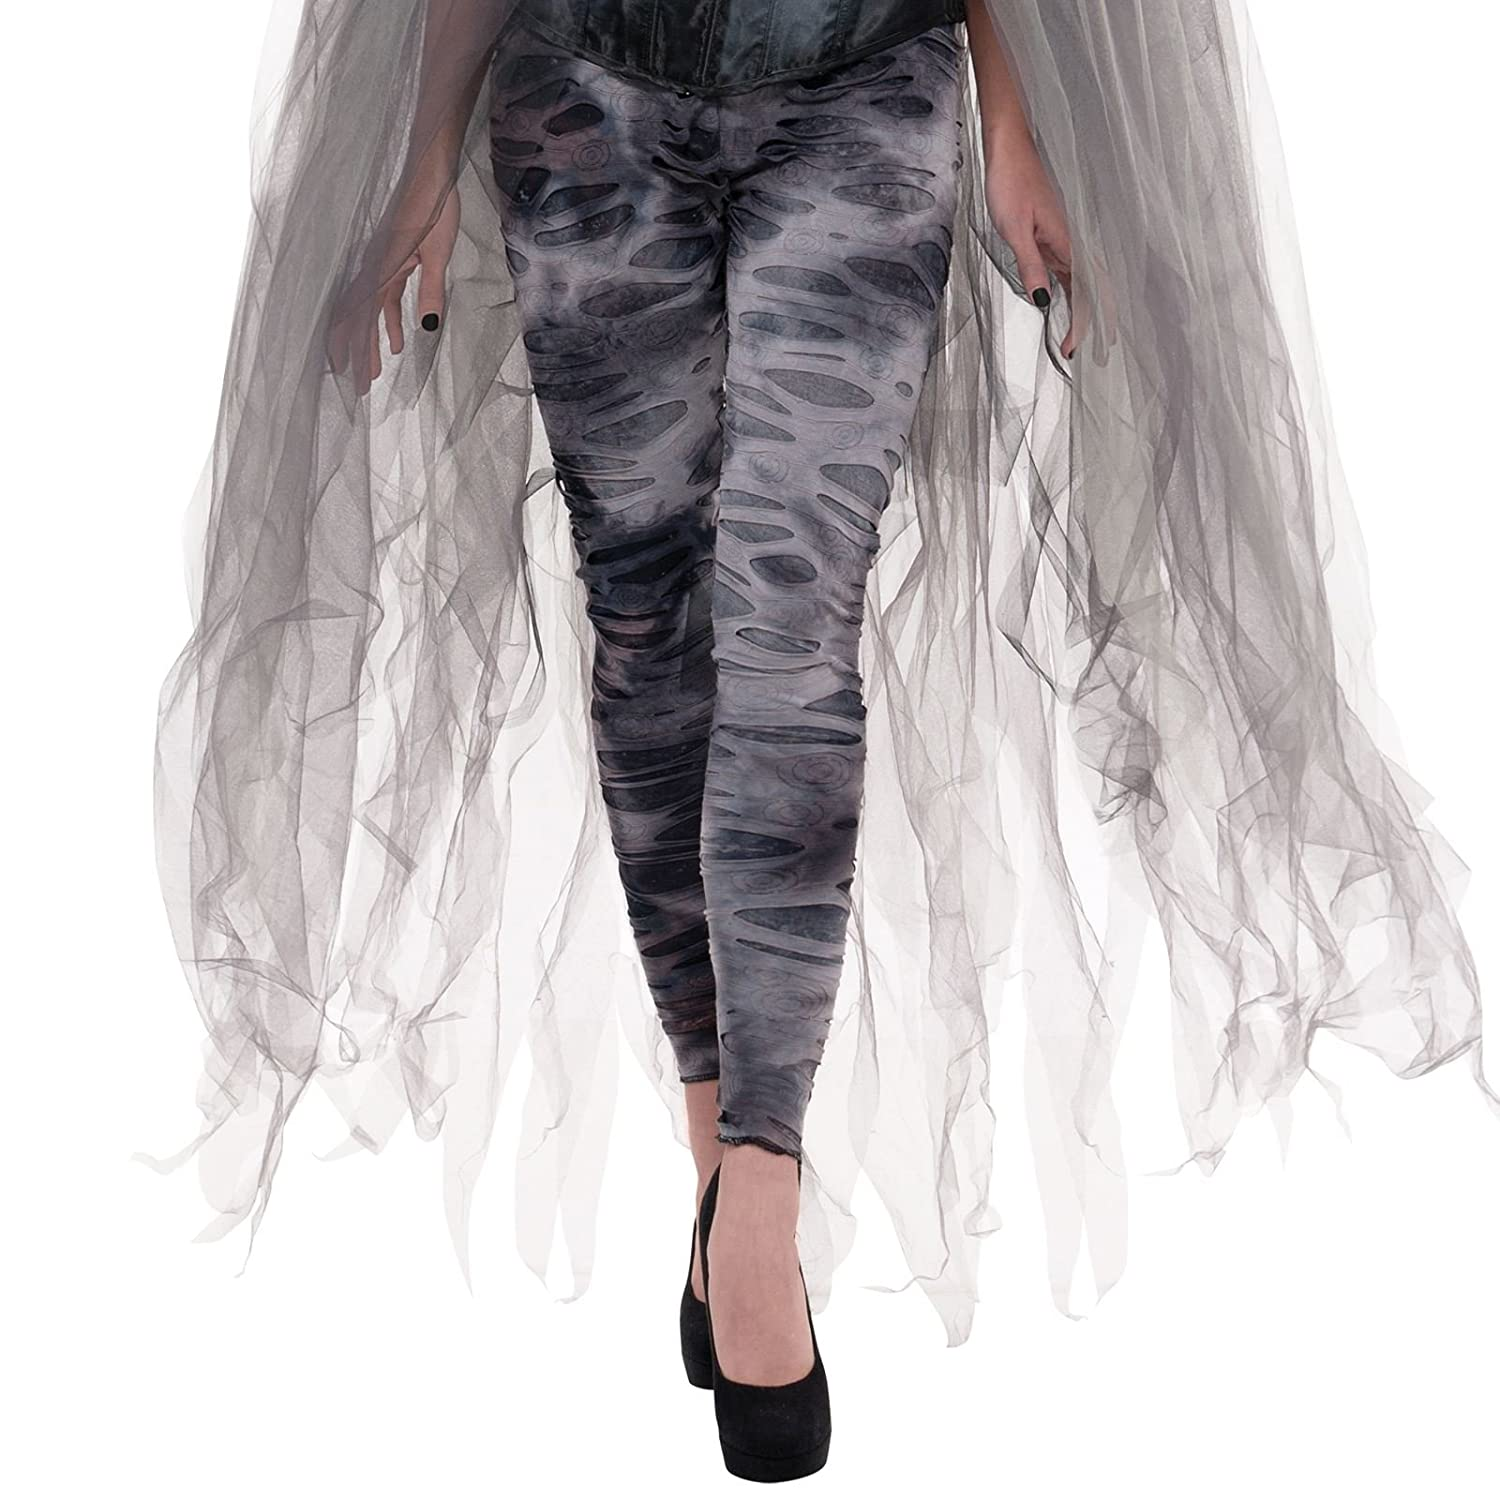 Multicolor amscan Tattered Gray Footless Zombie Tights Medium